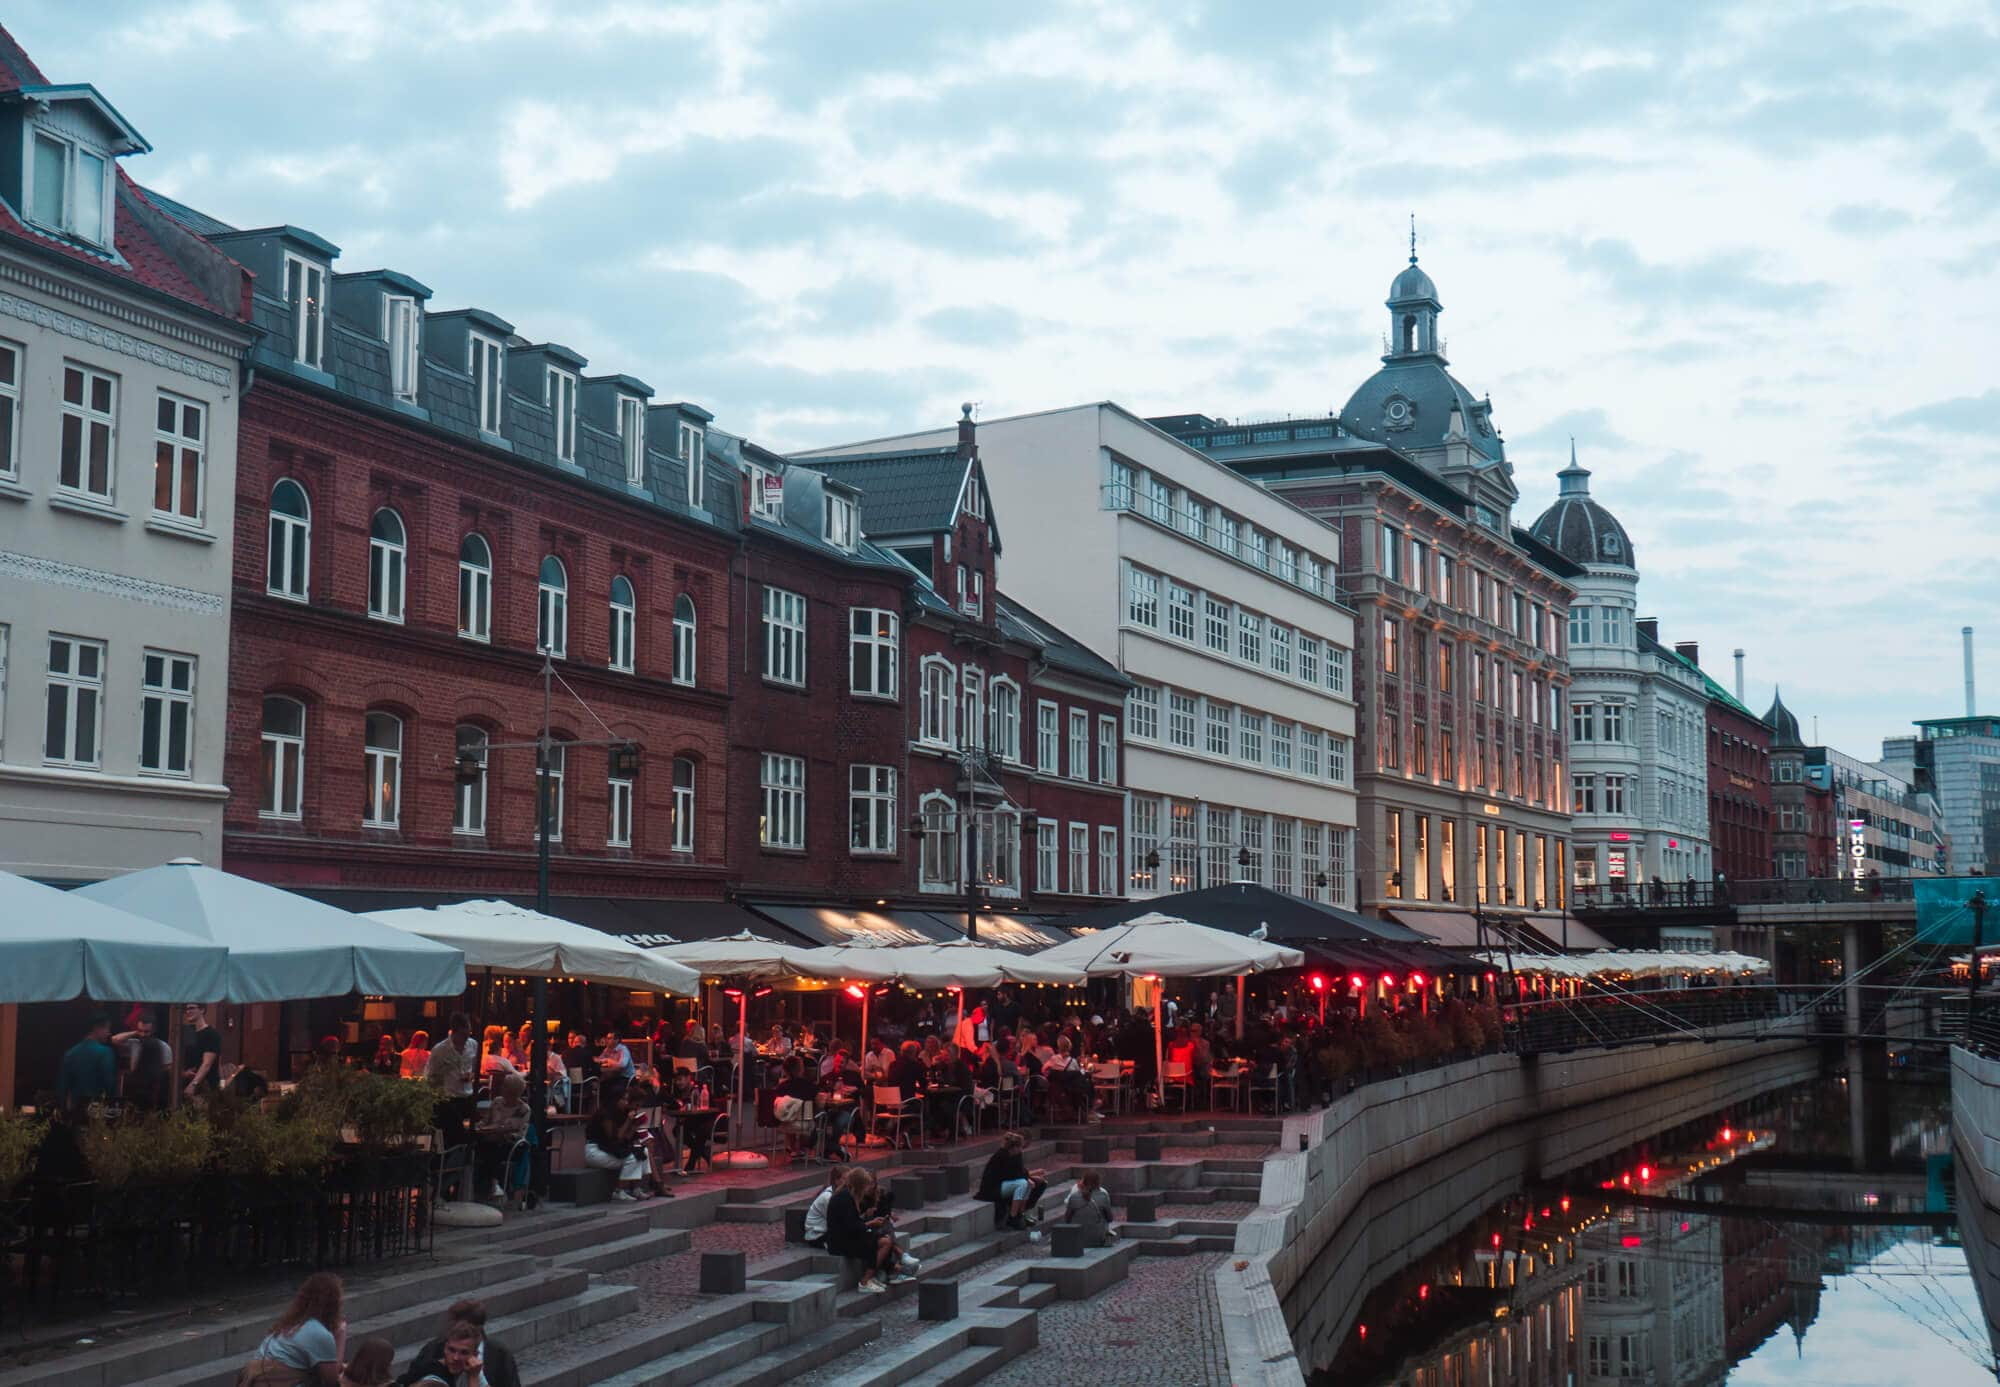 Two days in Aarhus - Denmark's happiest city. Aarhus weekend guide